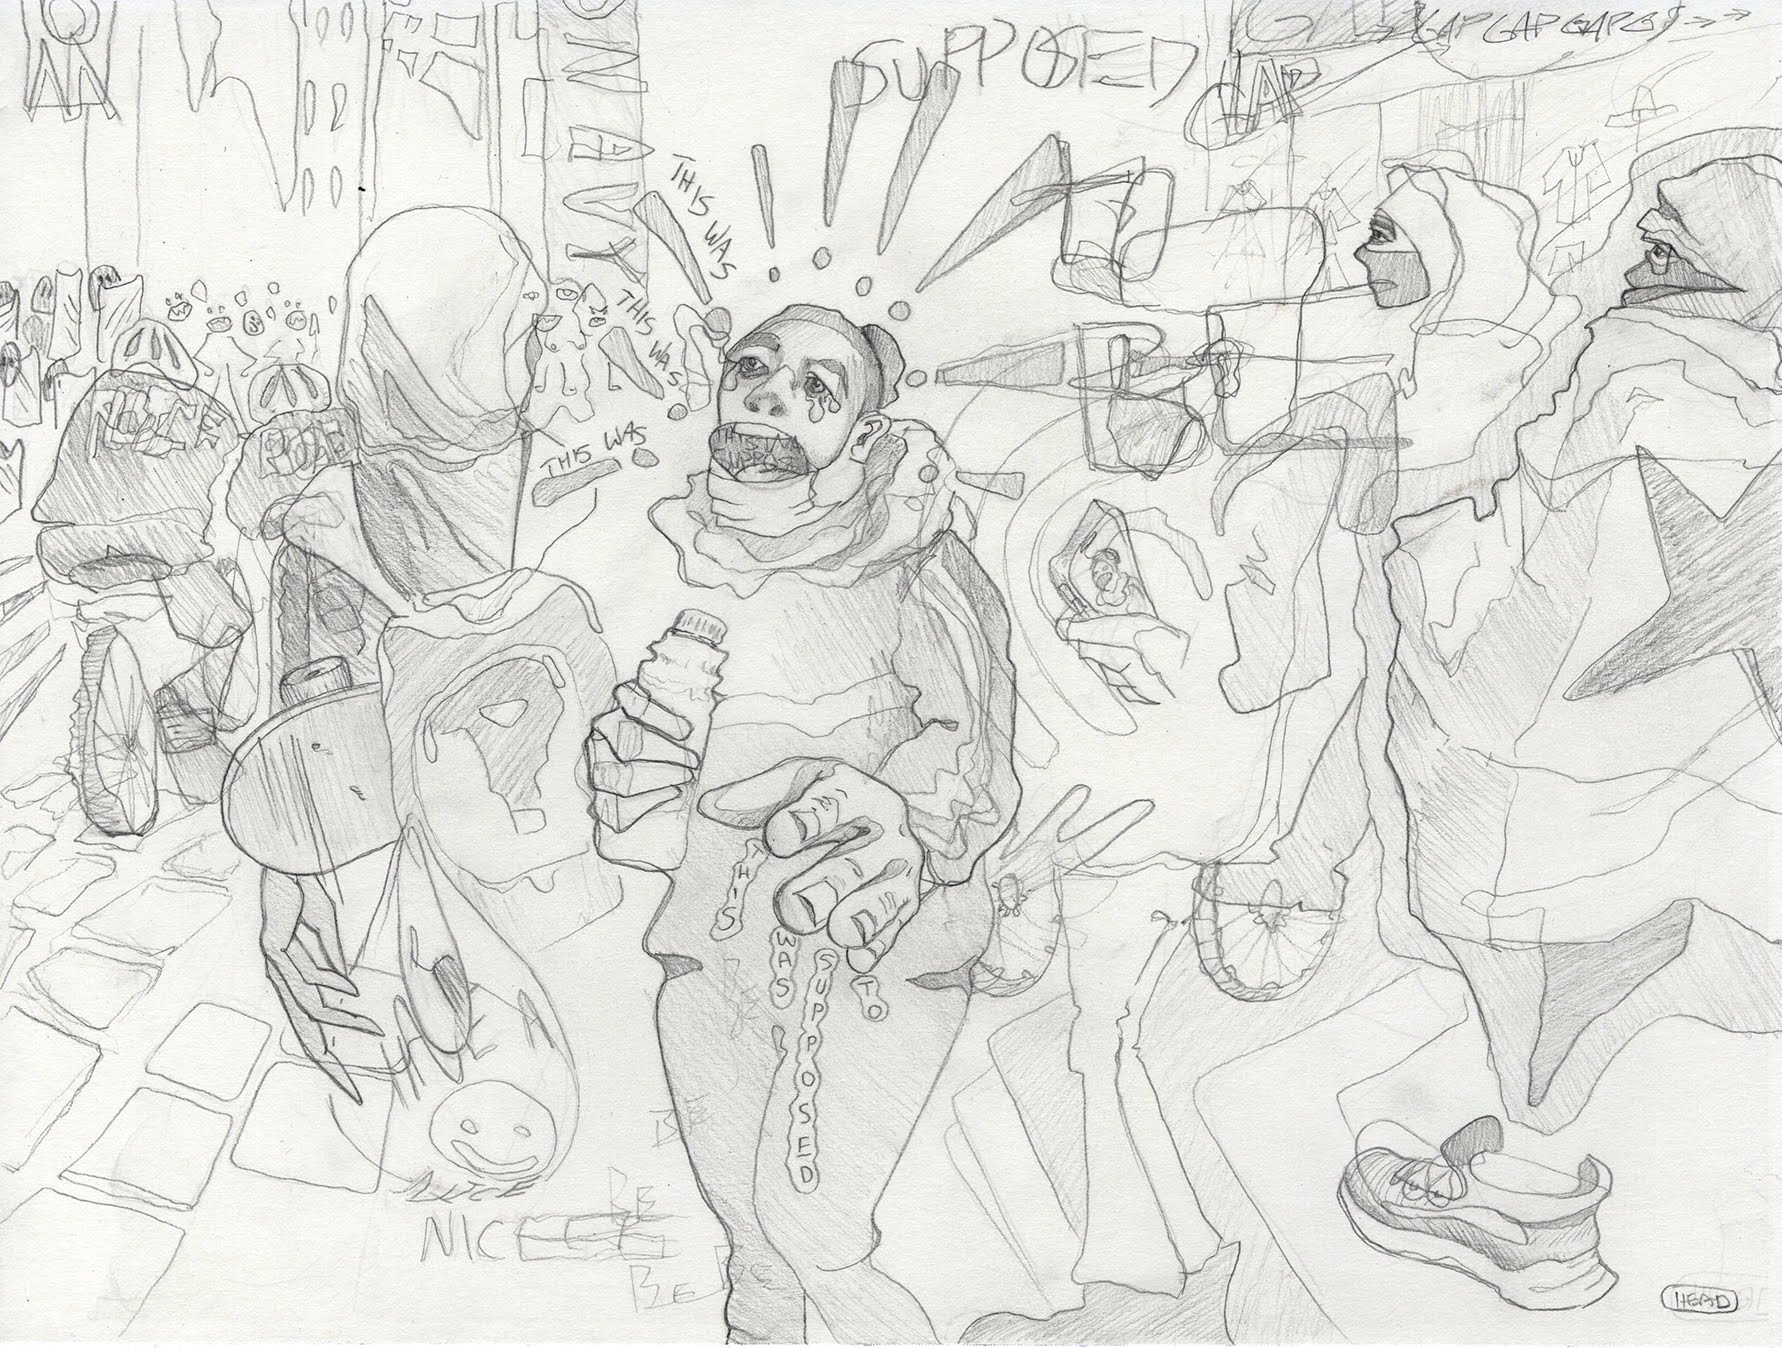 https://sites.google.com/a/suzannehead.com/suzanne-head/press/seattleprotests/head-protest-sketch2.jpg?attredirects=0